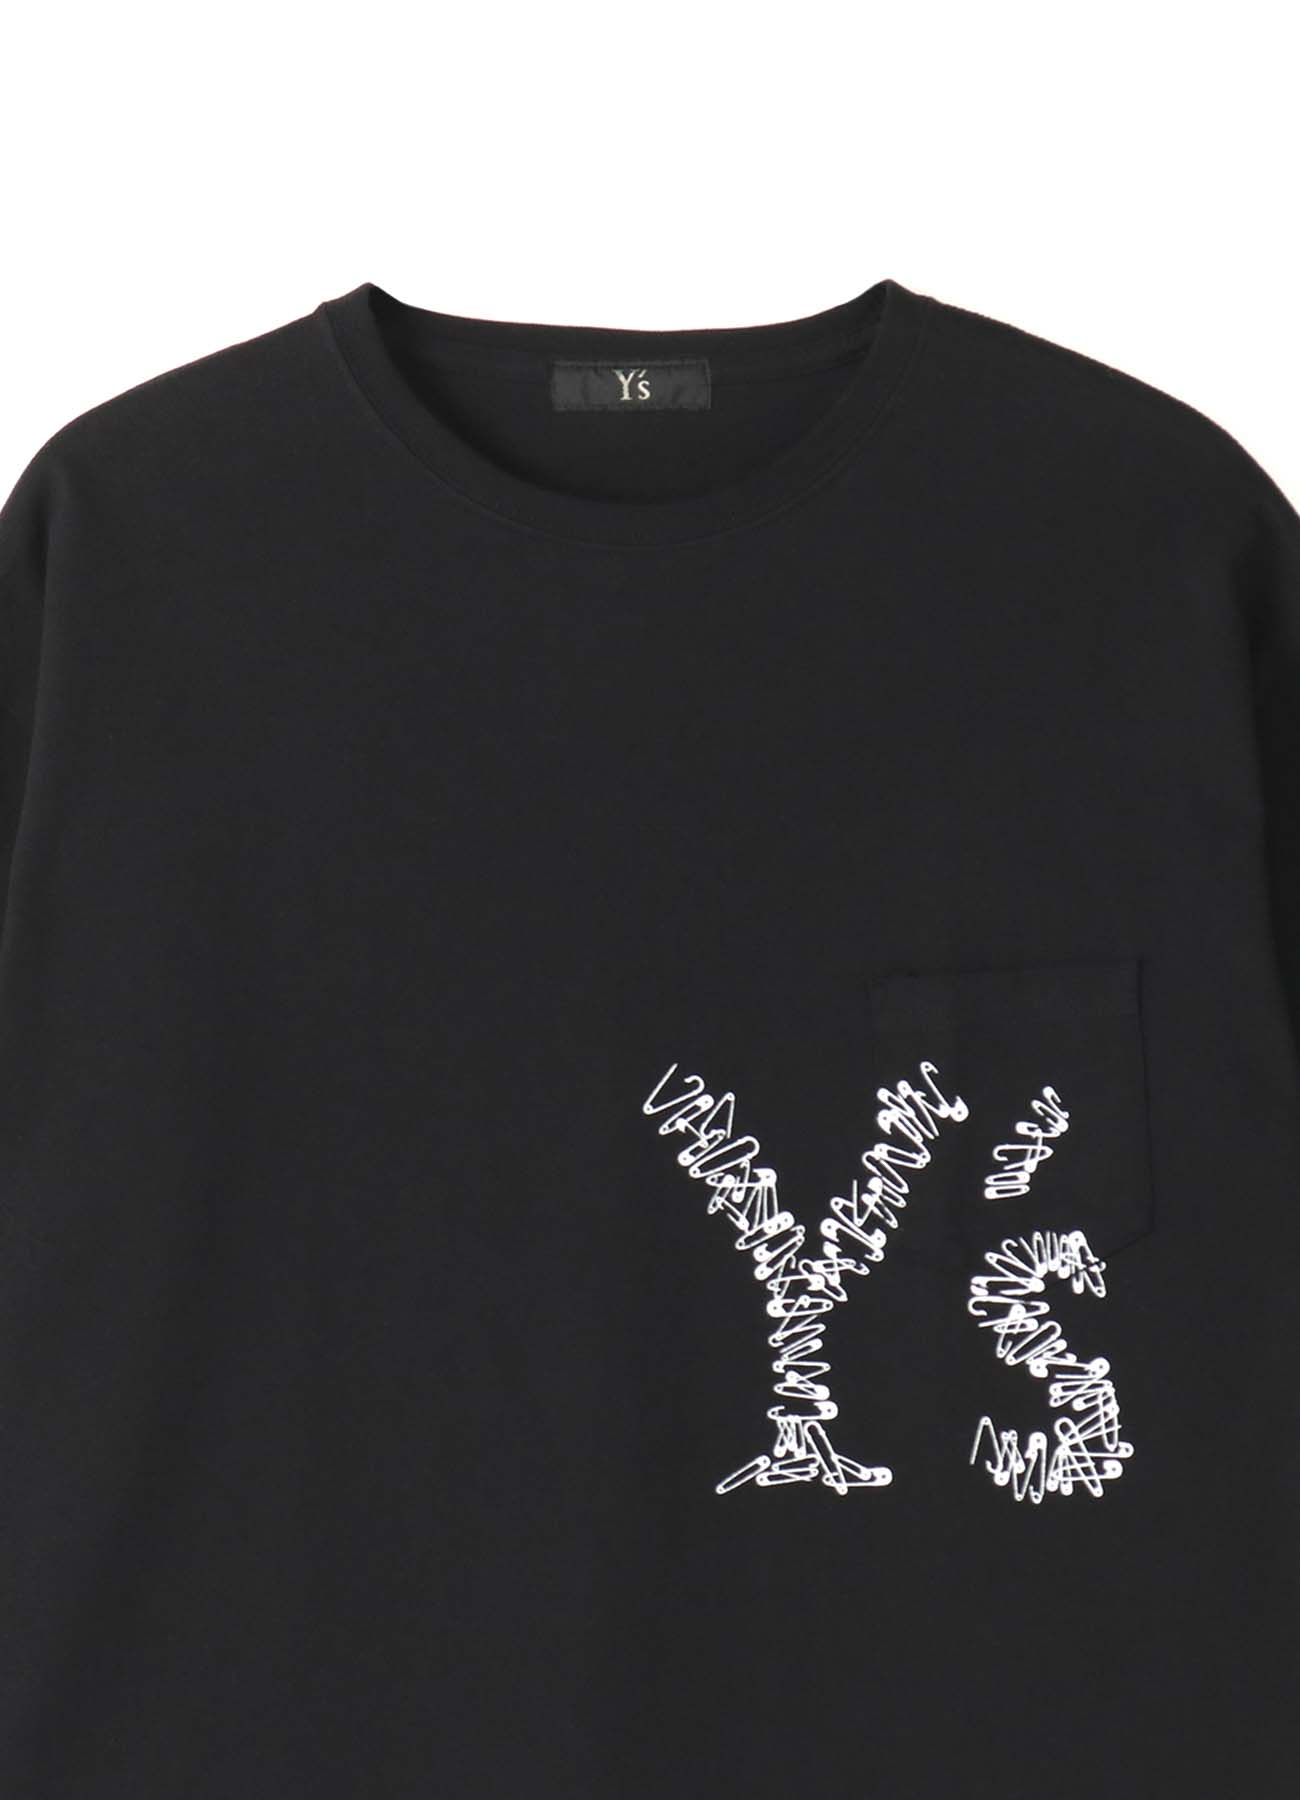 -Online EXCLUSIVE- Y's Pin T-shirt